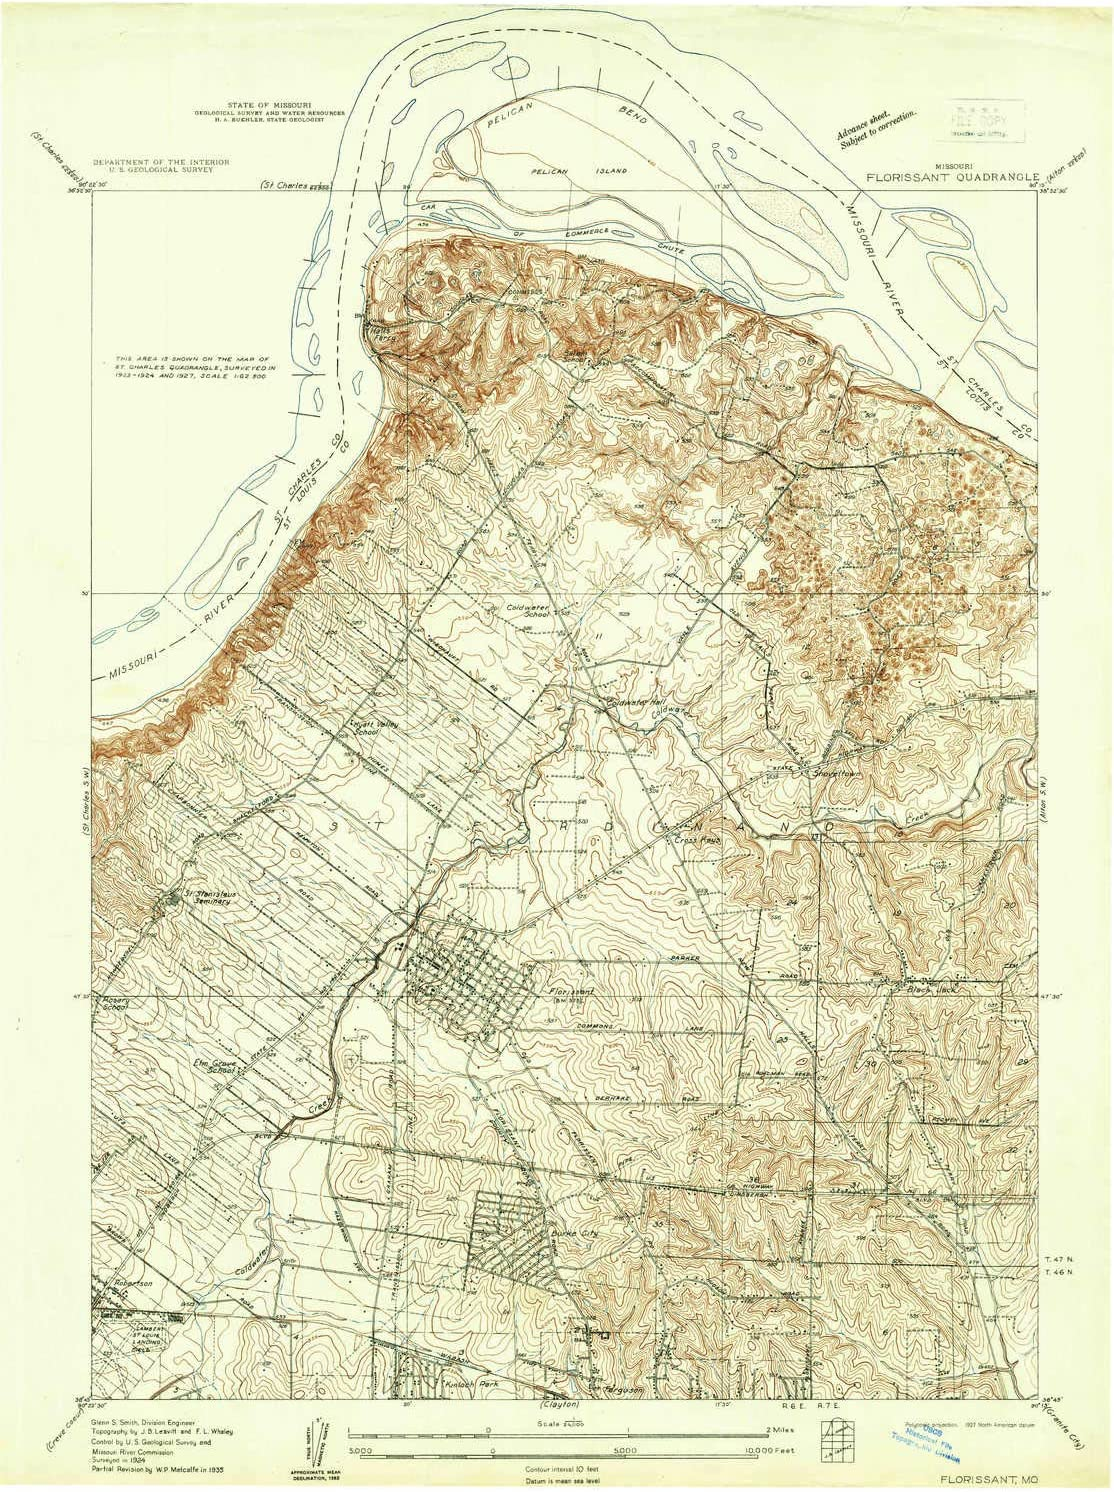 YellowMaps Florissant MO topo map Reservation 7.5 X 1:24000 Minu Scale Popularity